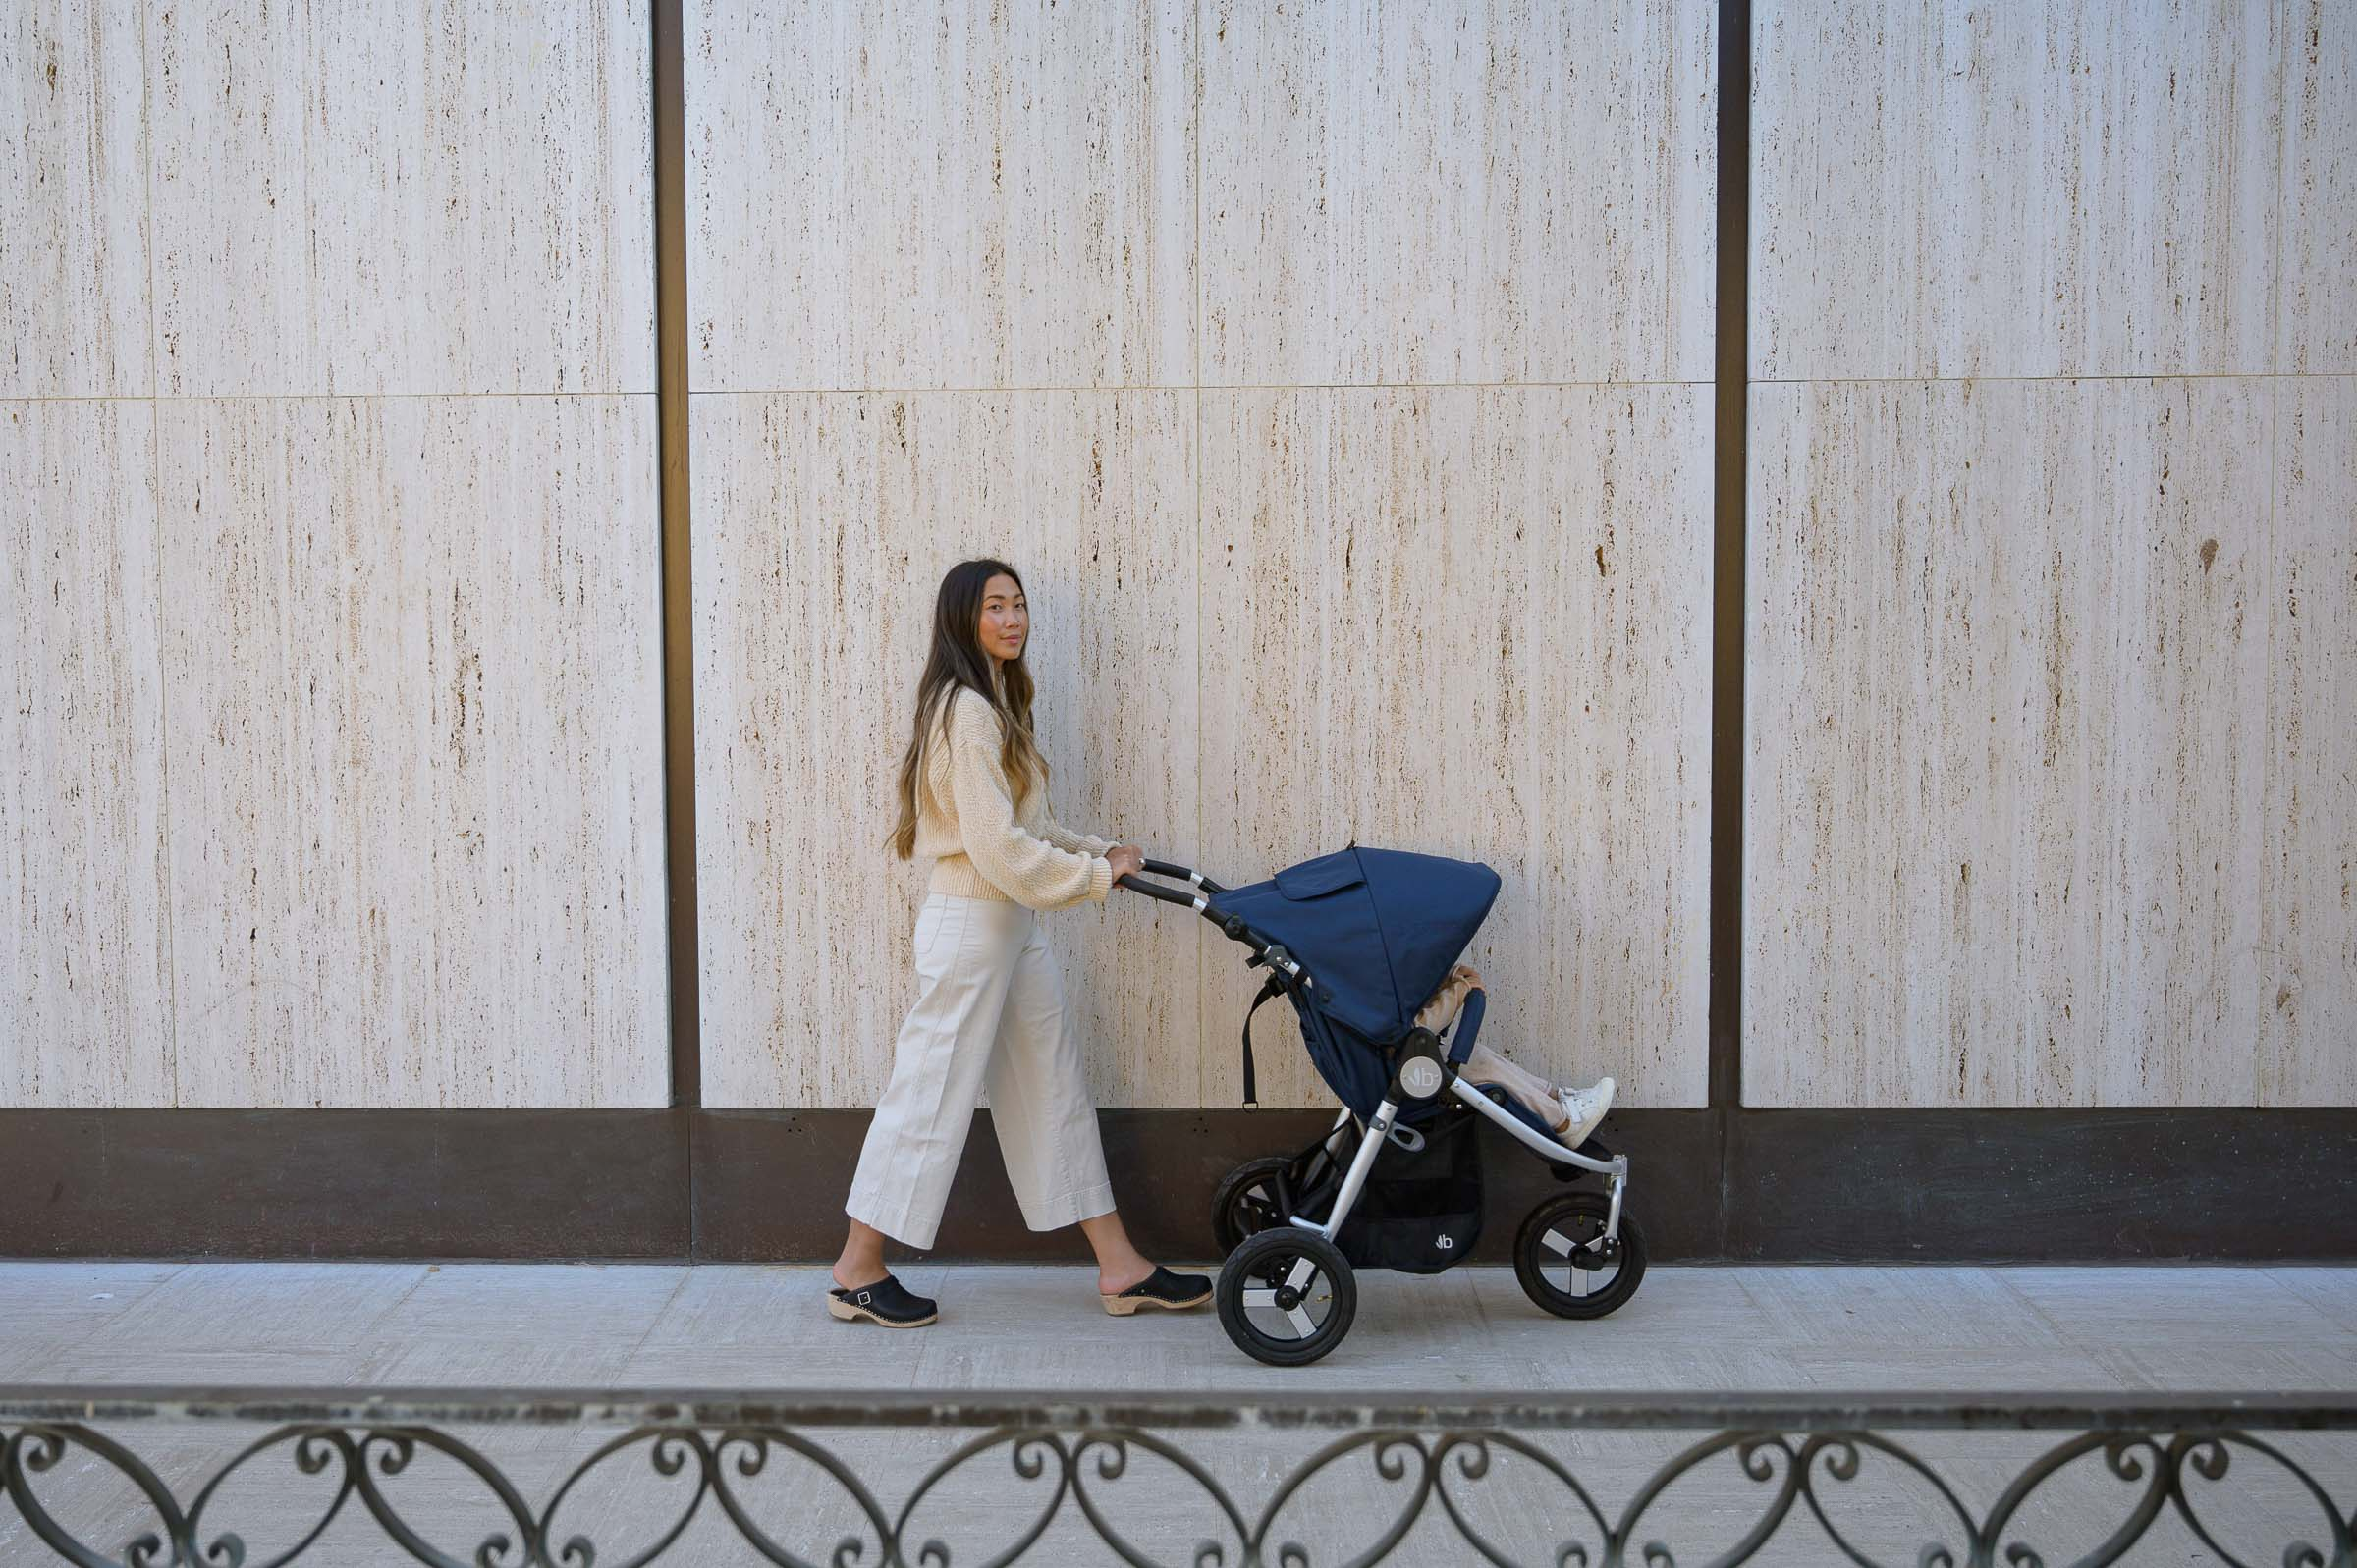 Mother pushing Indie in Maritime Blue in front of white marble walls